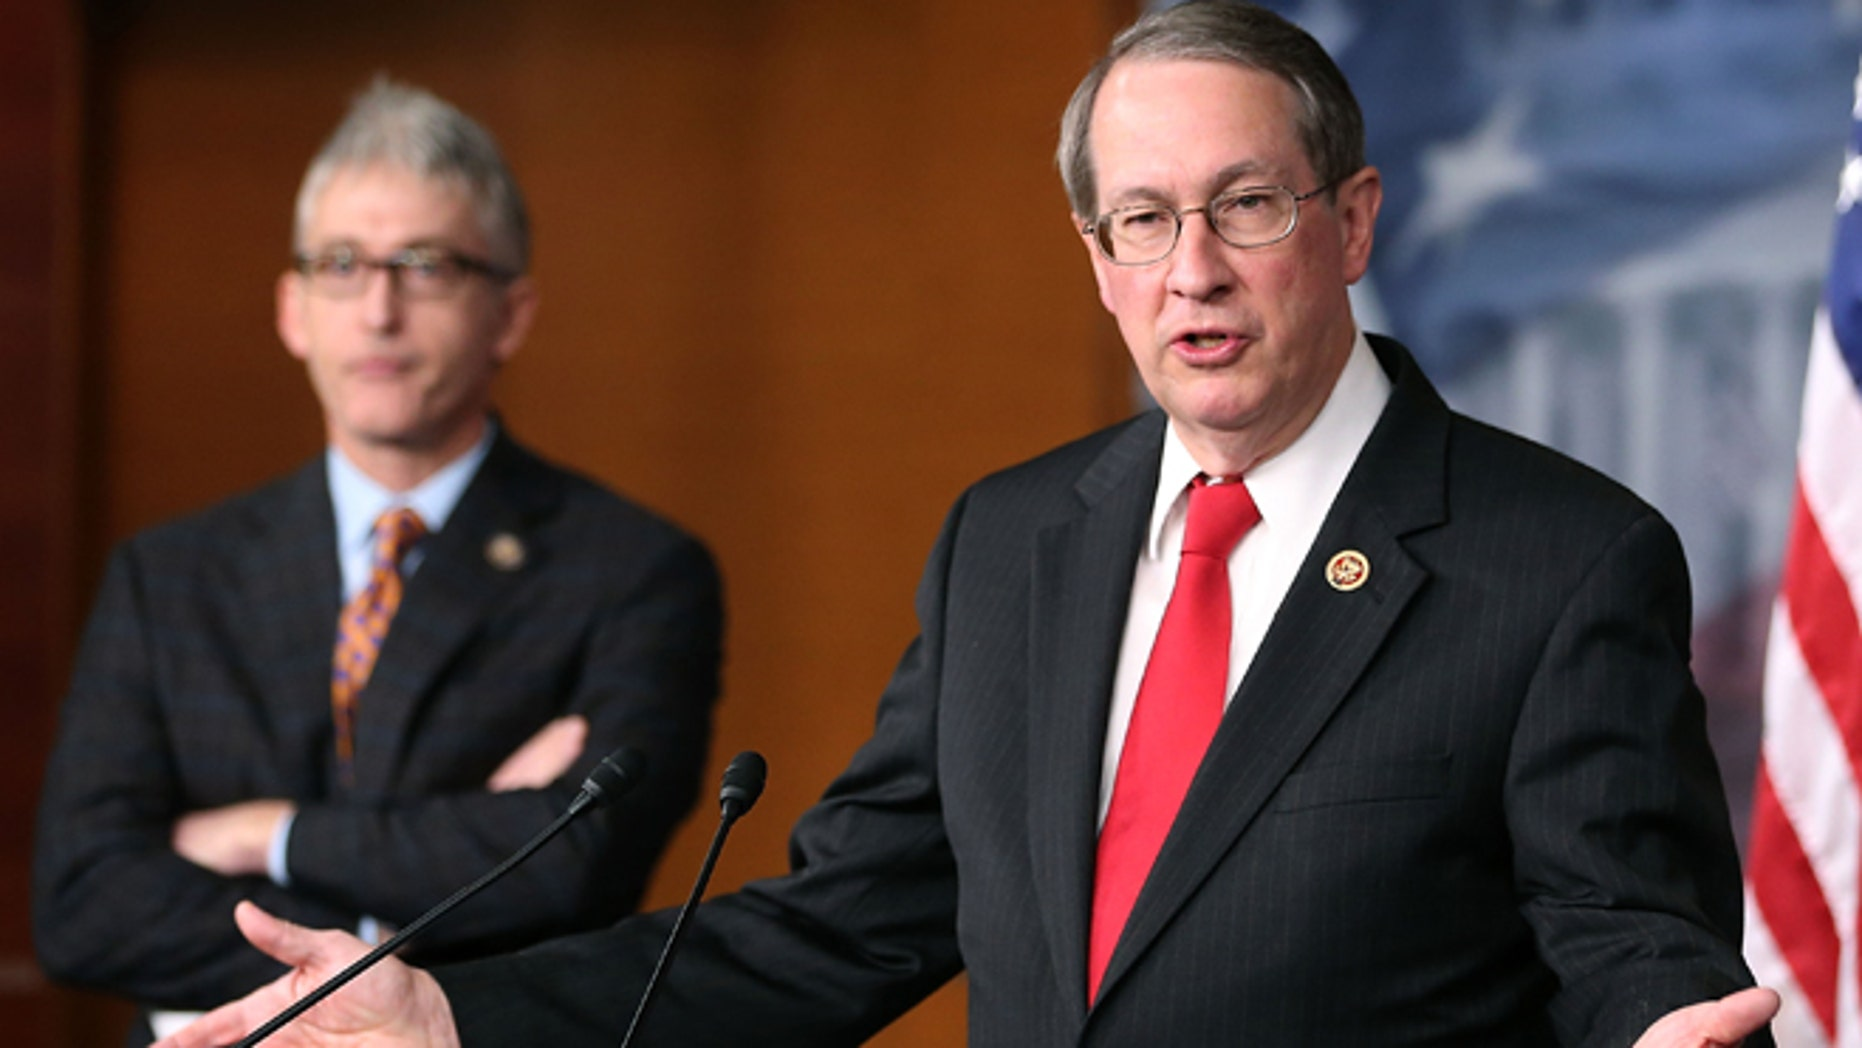 WASHINGTON, DC - APRIL 25:  Rep. Bob Goodlatte (R-VA) (R), Chairman of the House Judiciary Committee, and Rep. Trey Gowdy (R-SC) speak about immigration during a news conference on Capitol Hill, April 25, 2013 in Washington, DC. The news conference was held to discuss immigration control issues that are before Congress.  (Photo by Mark Wilson/Getty Images)